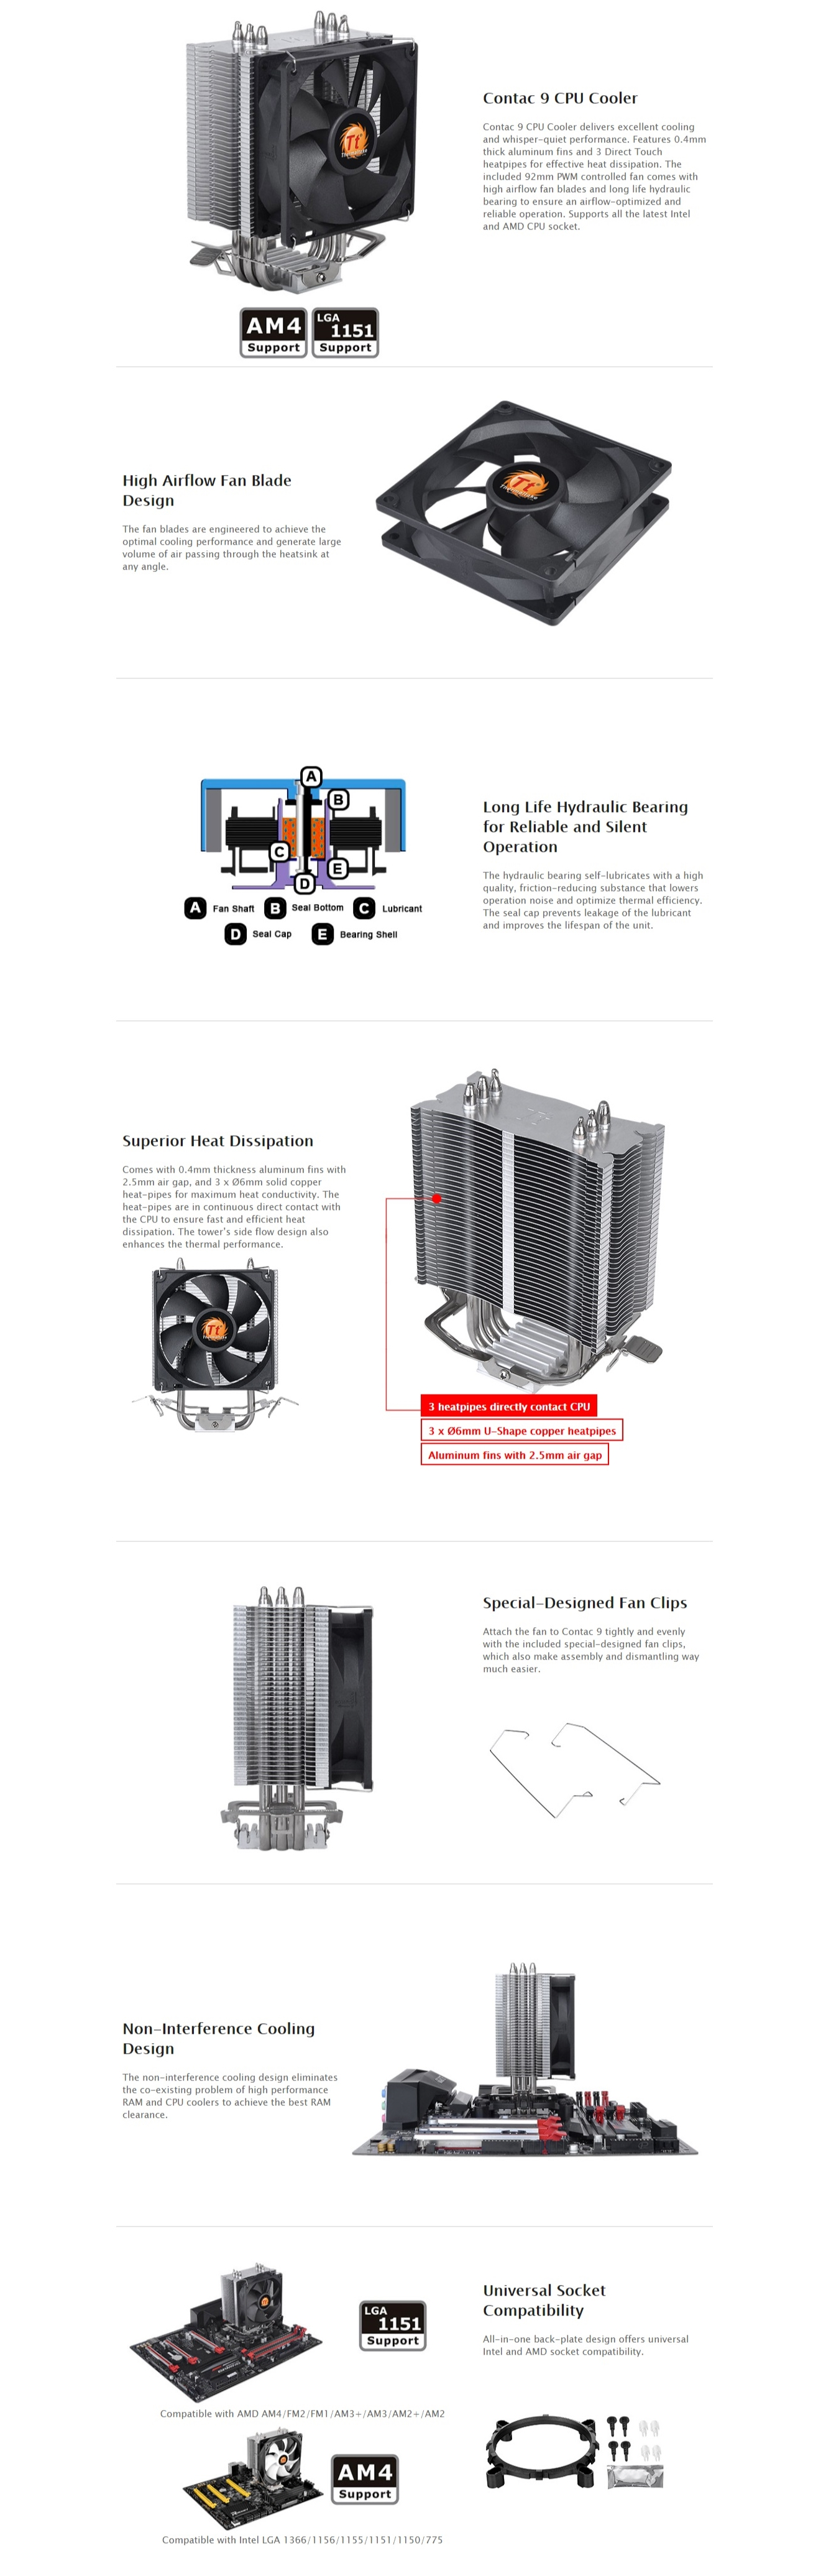 A large marketing image providing additional information about the product Thermaltake Contac 9 CPU Cooler  - Additional alt info not provided